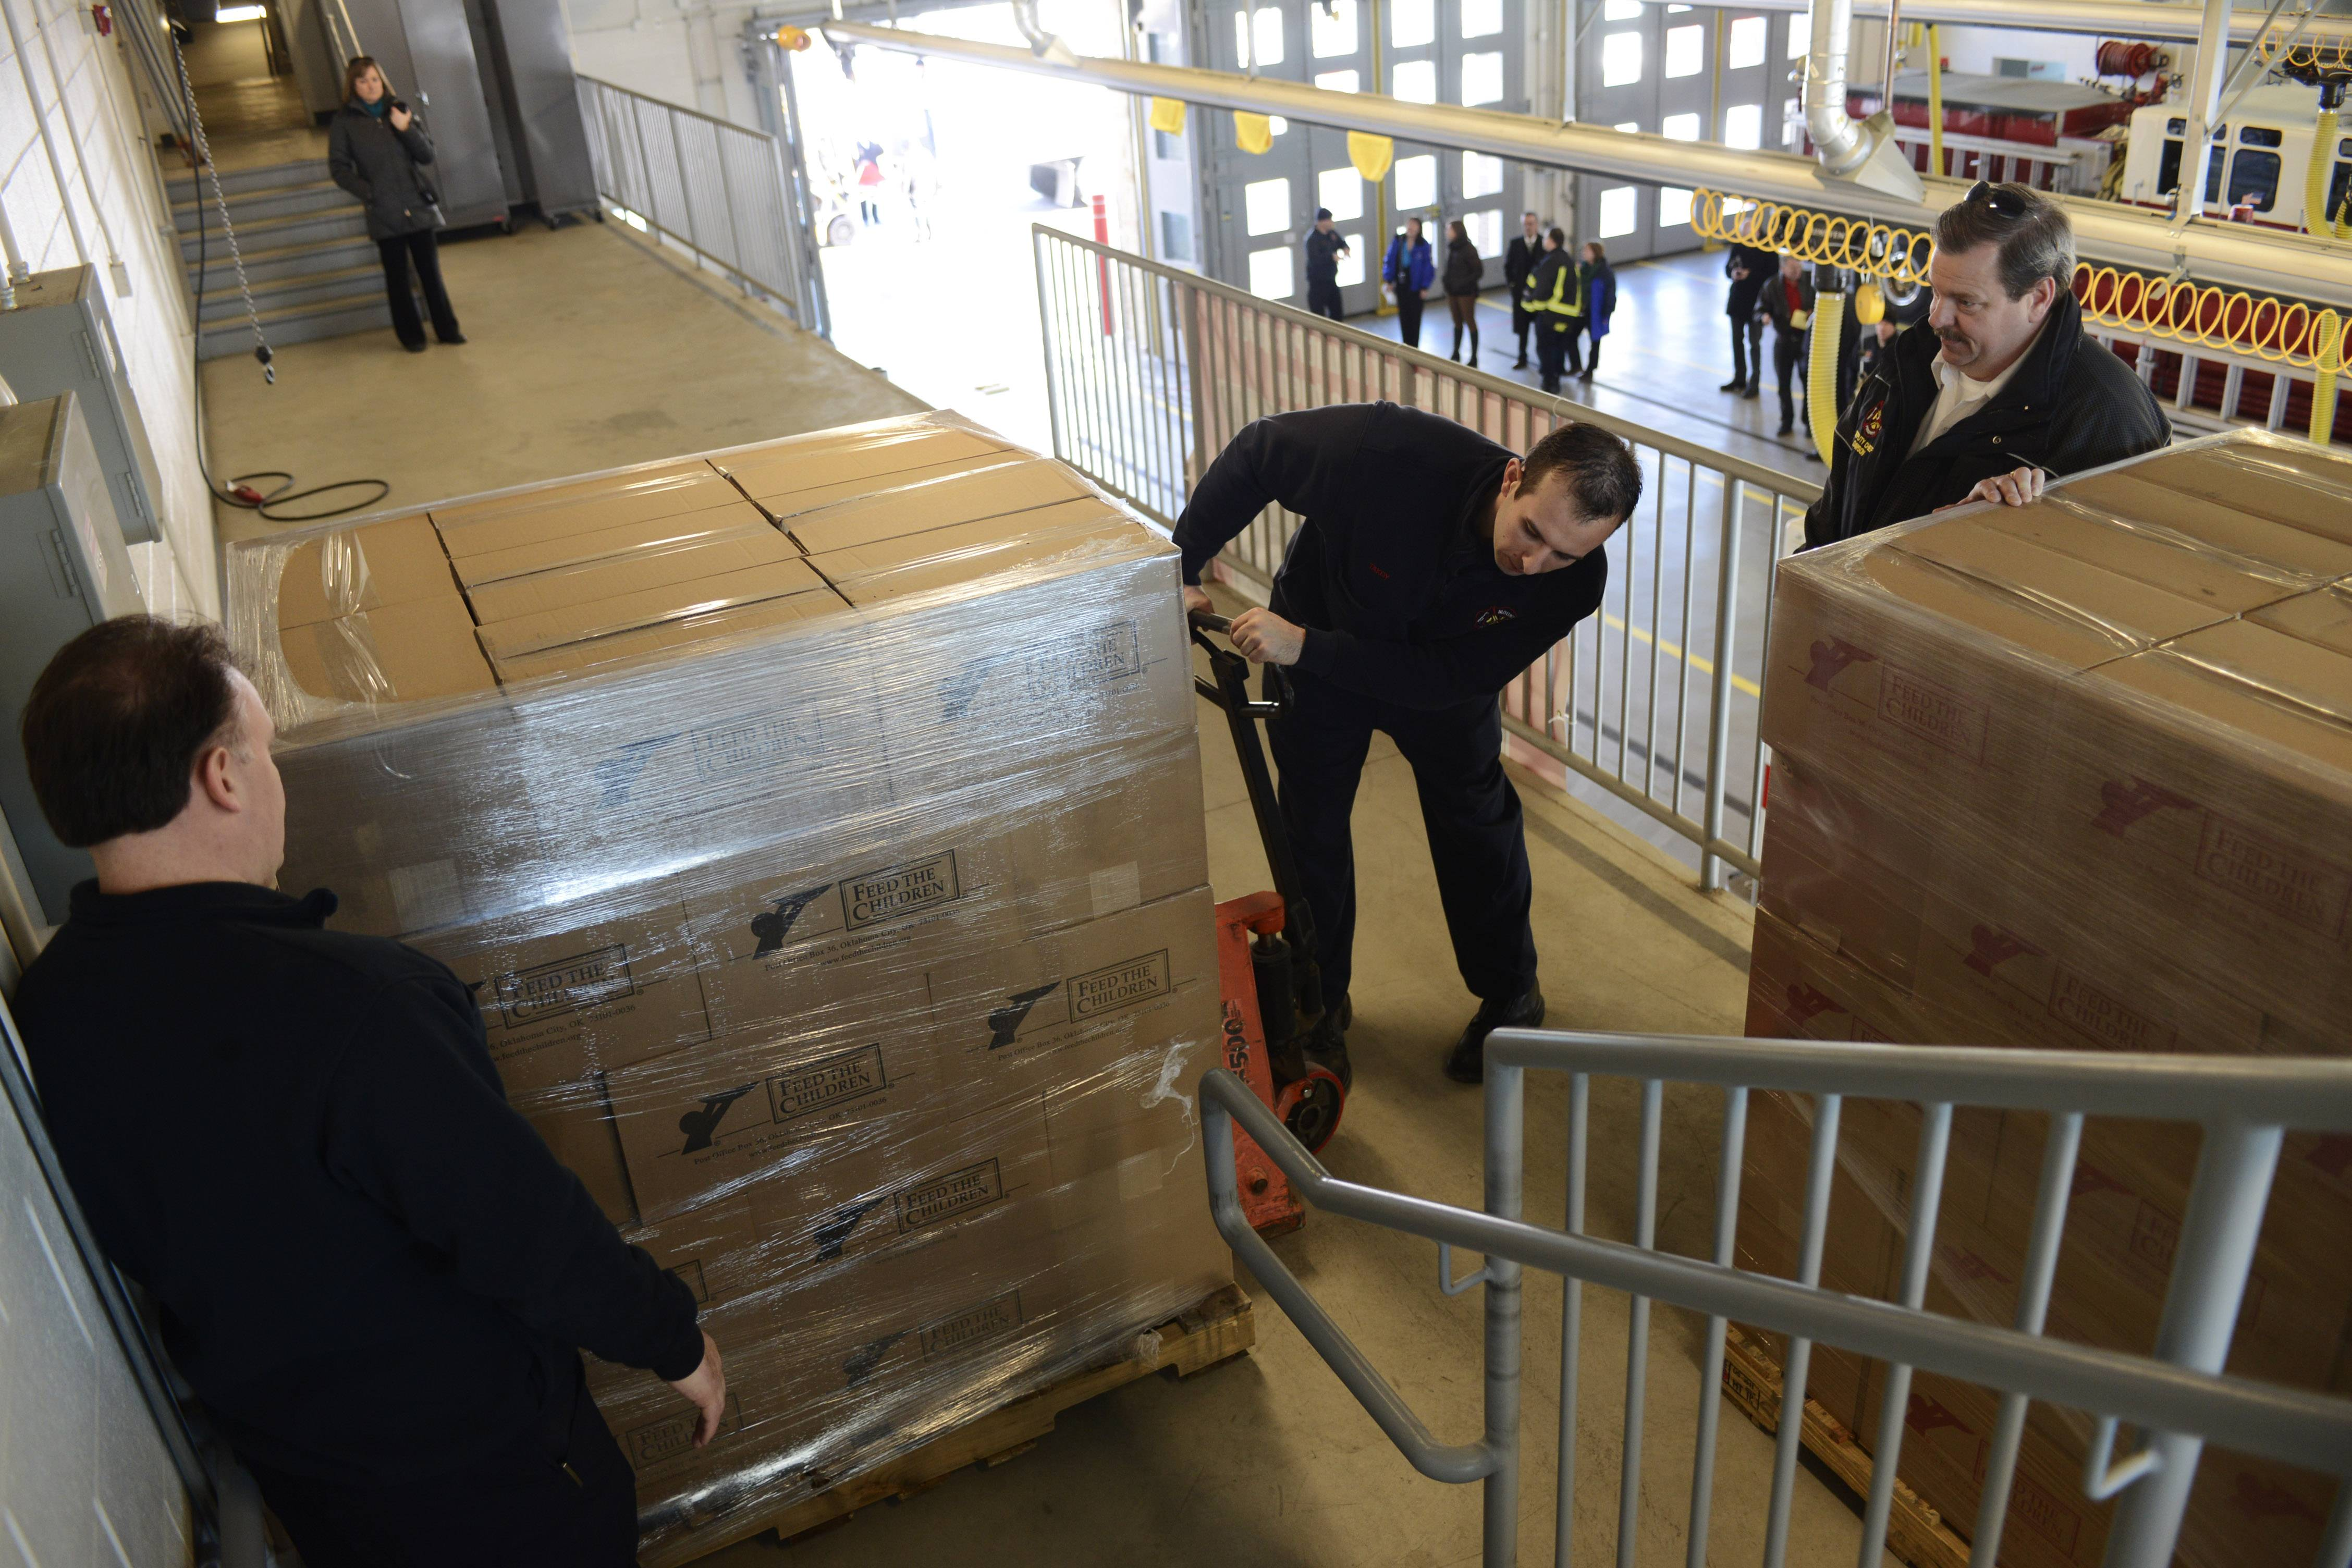 Firefighter/paramedics Anthony Minarcik, left, and Matt Tackoy unload a pallet with the assistance of Deputy Fire Chief Henry Dawson, right, as Feed the Children delivered a trailer full of food to Mount Prospect Fire Station 14 on Kensington Road.